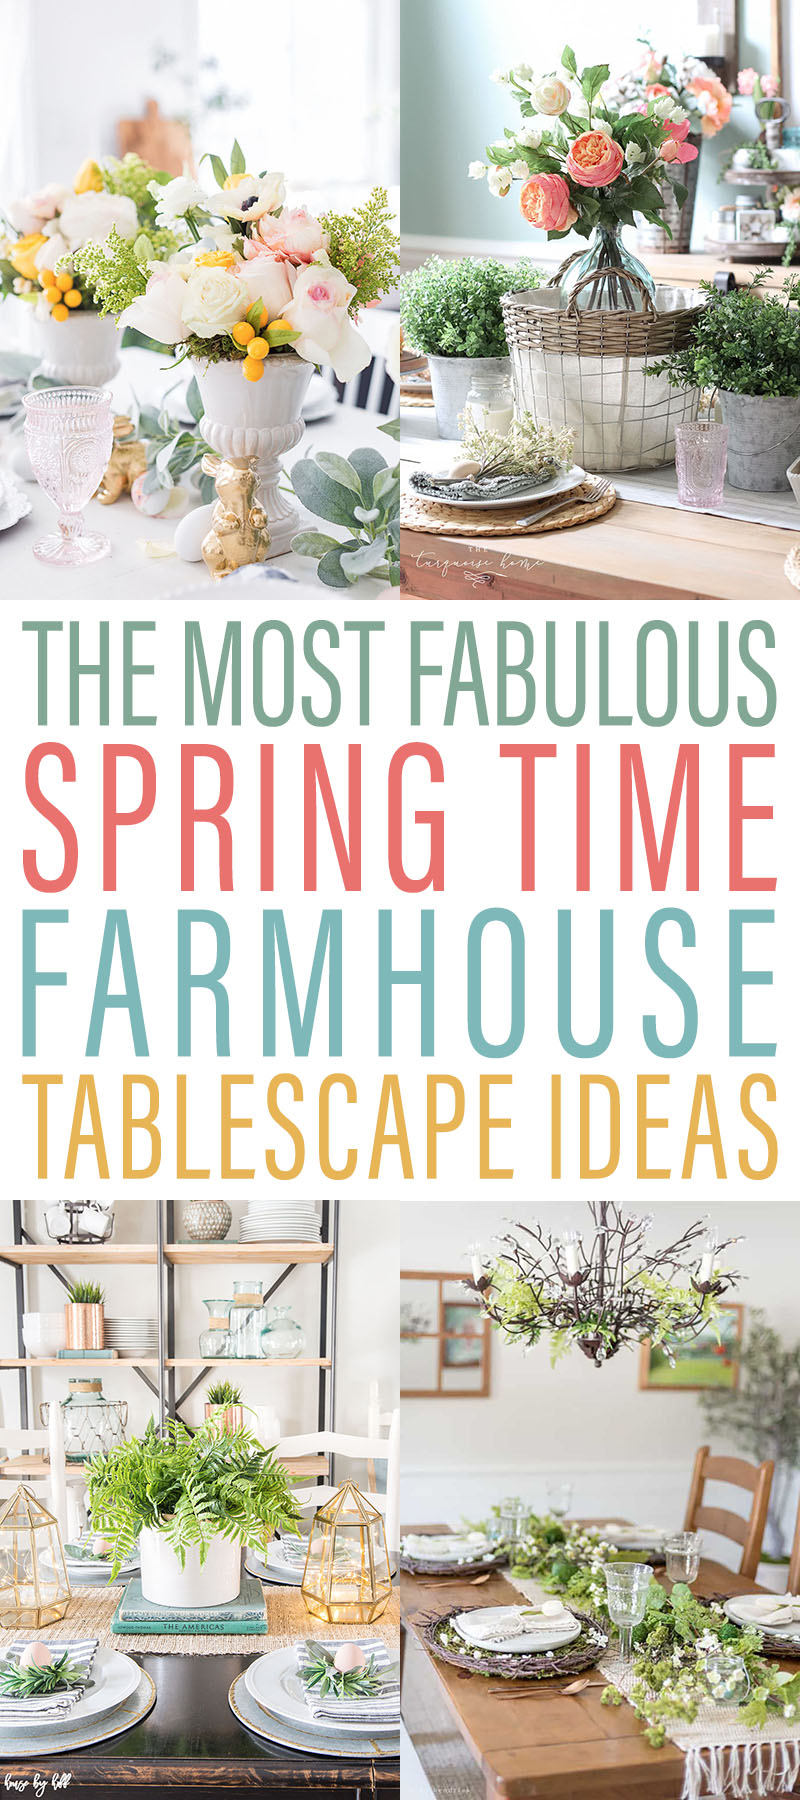 The Most Fabulous Spring Time Farmhouse Tablescape Ideas are waiting for you to check out and be inspired by! So many amazing creations for you to enjoy!